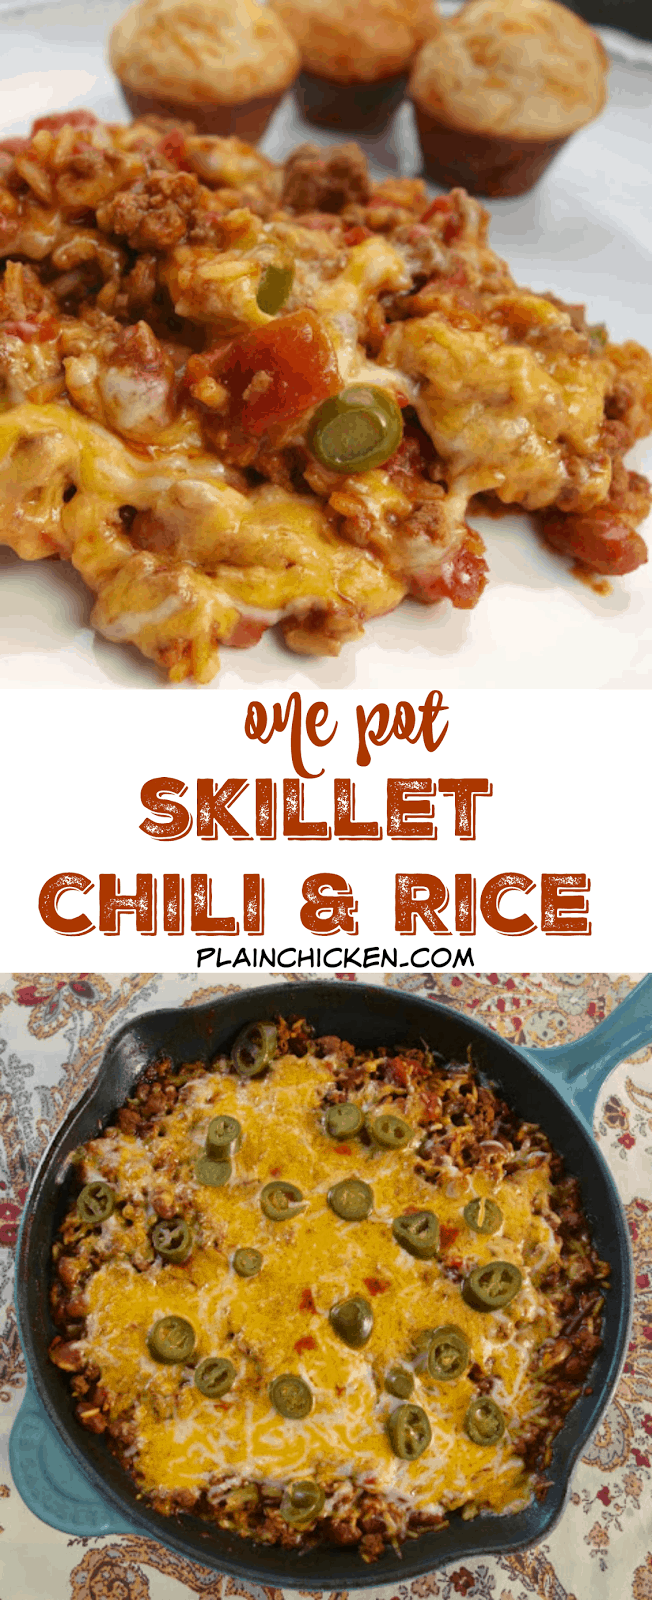 One Pot Skillet Chili and Rice - everything cooks in the same skillet! Ground beef, tomatoes, chili beans, rice, water, tomato paste, cheese and jalapeños - ready in 20 minutes! Great quick and easy weeknight meal!